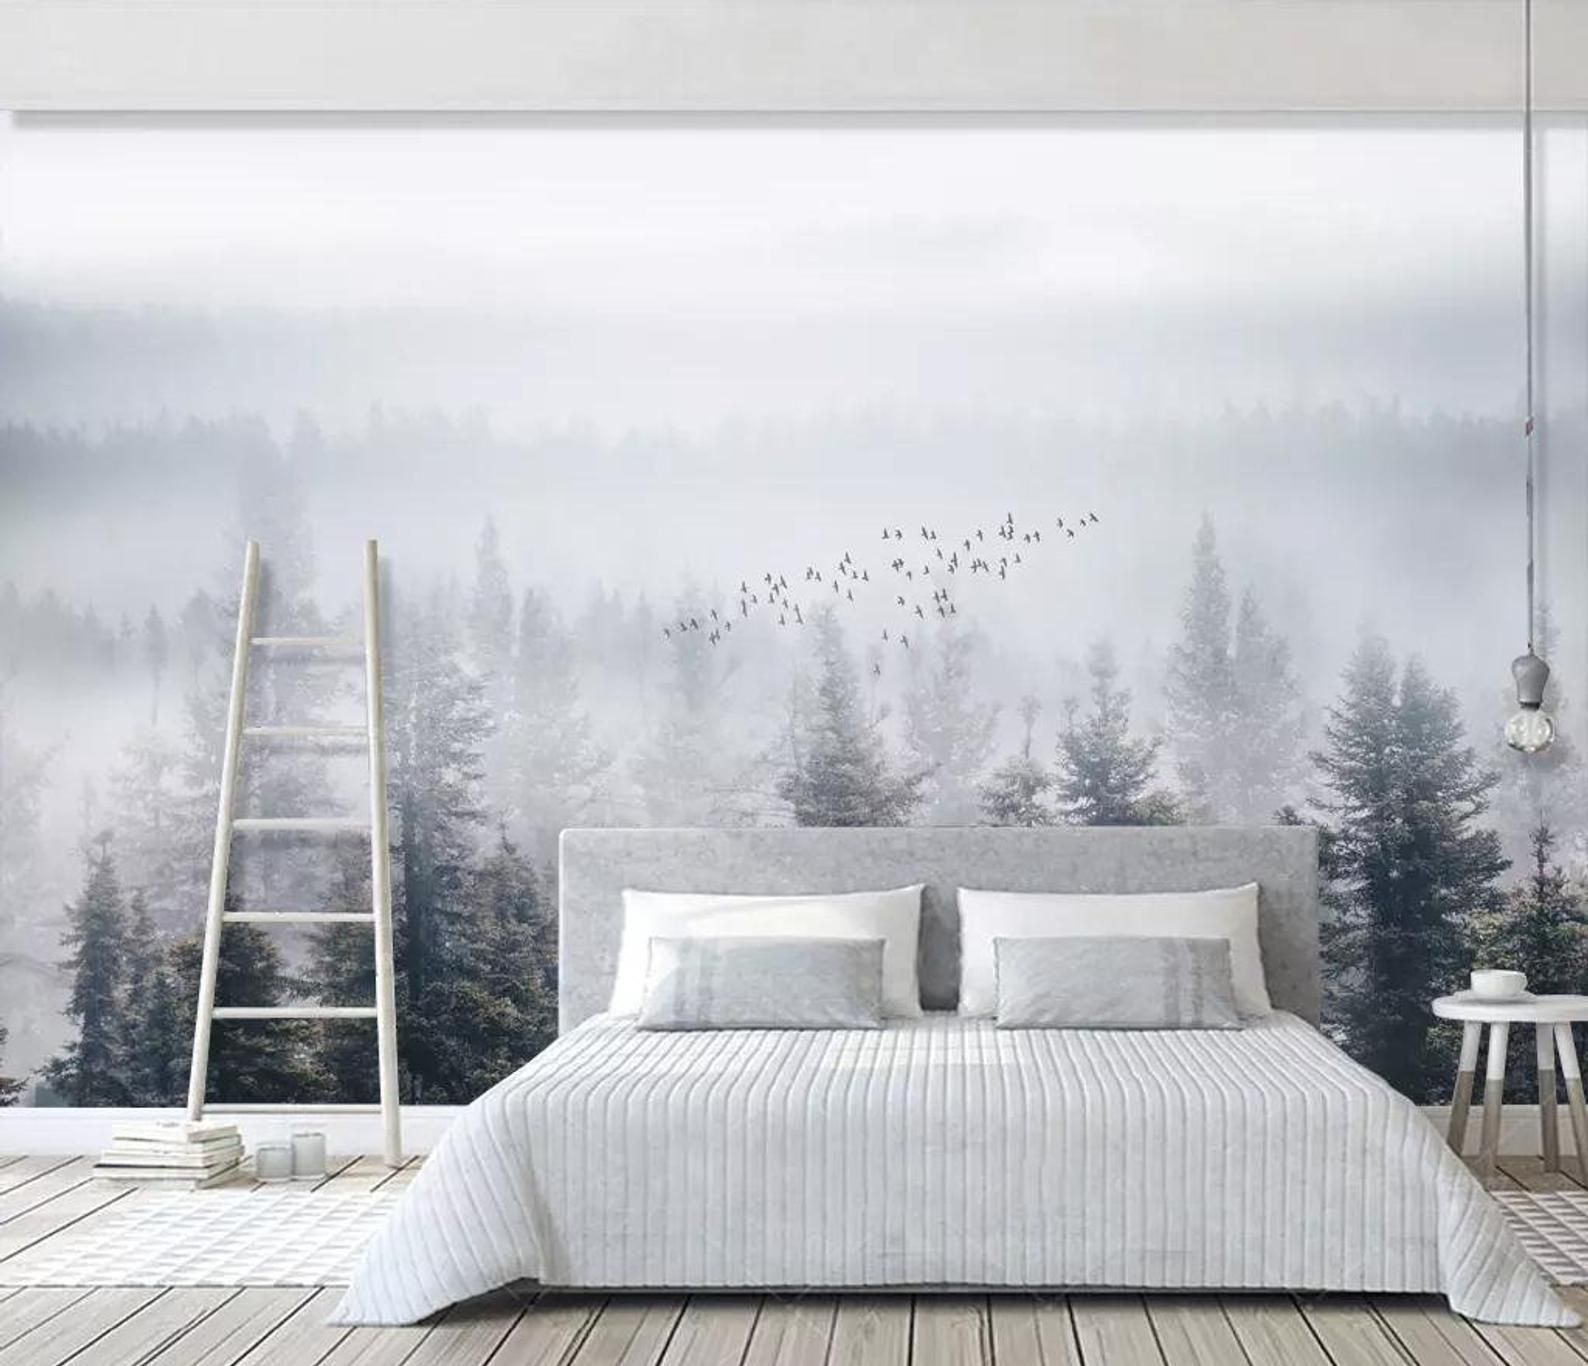 Misty forest wallpaper removable mural monogrammed tree